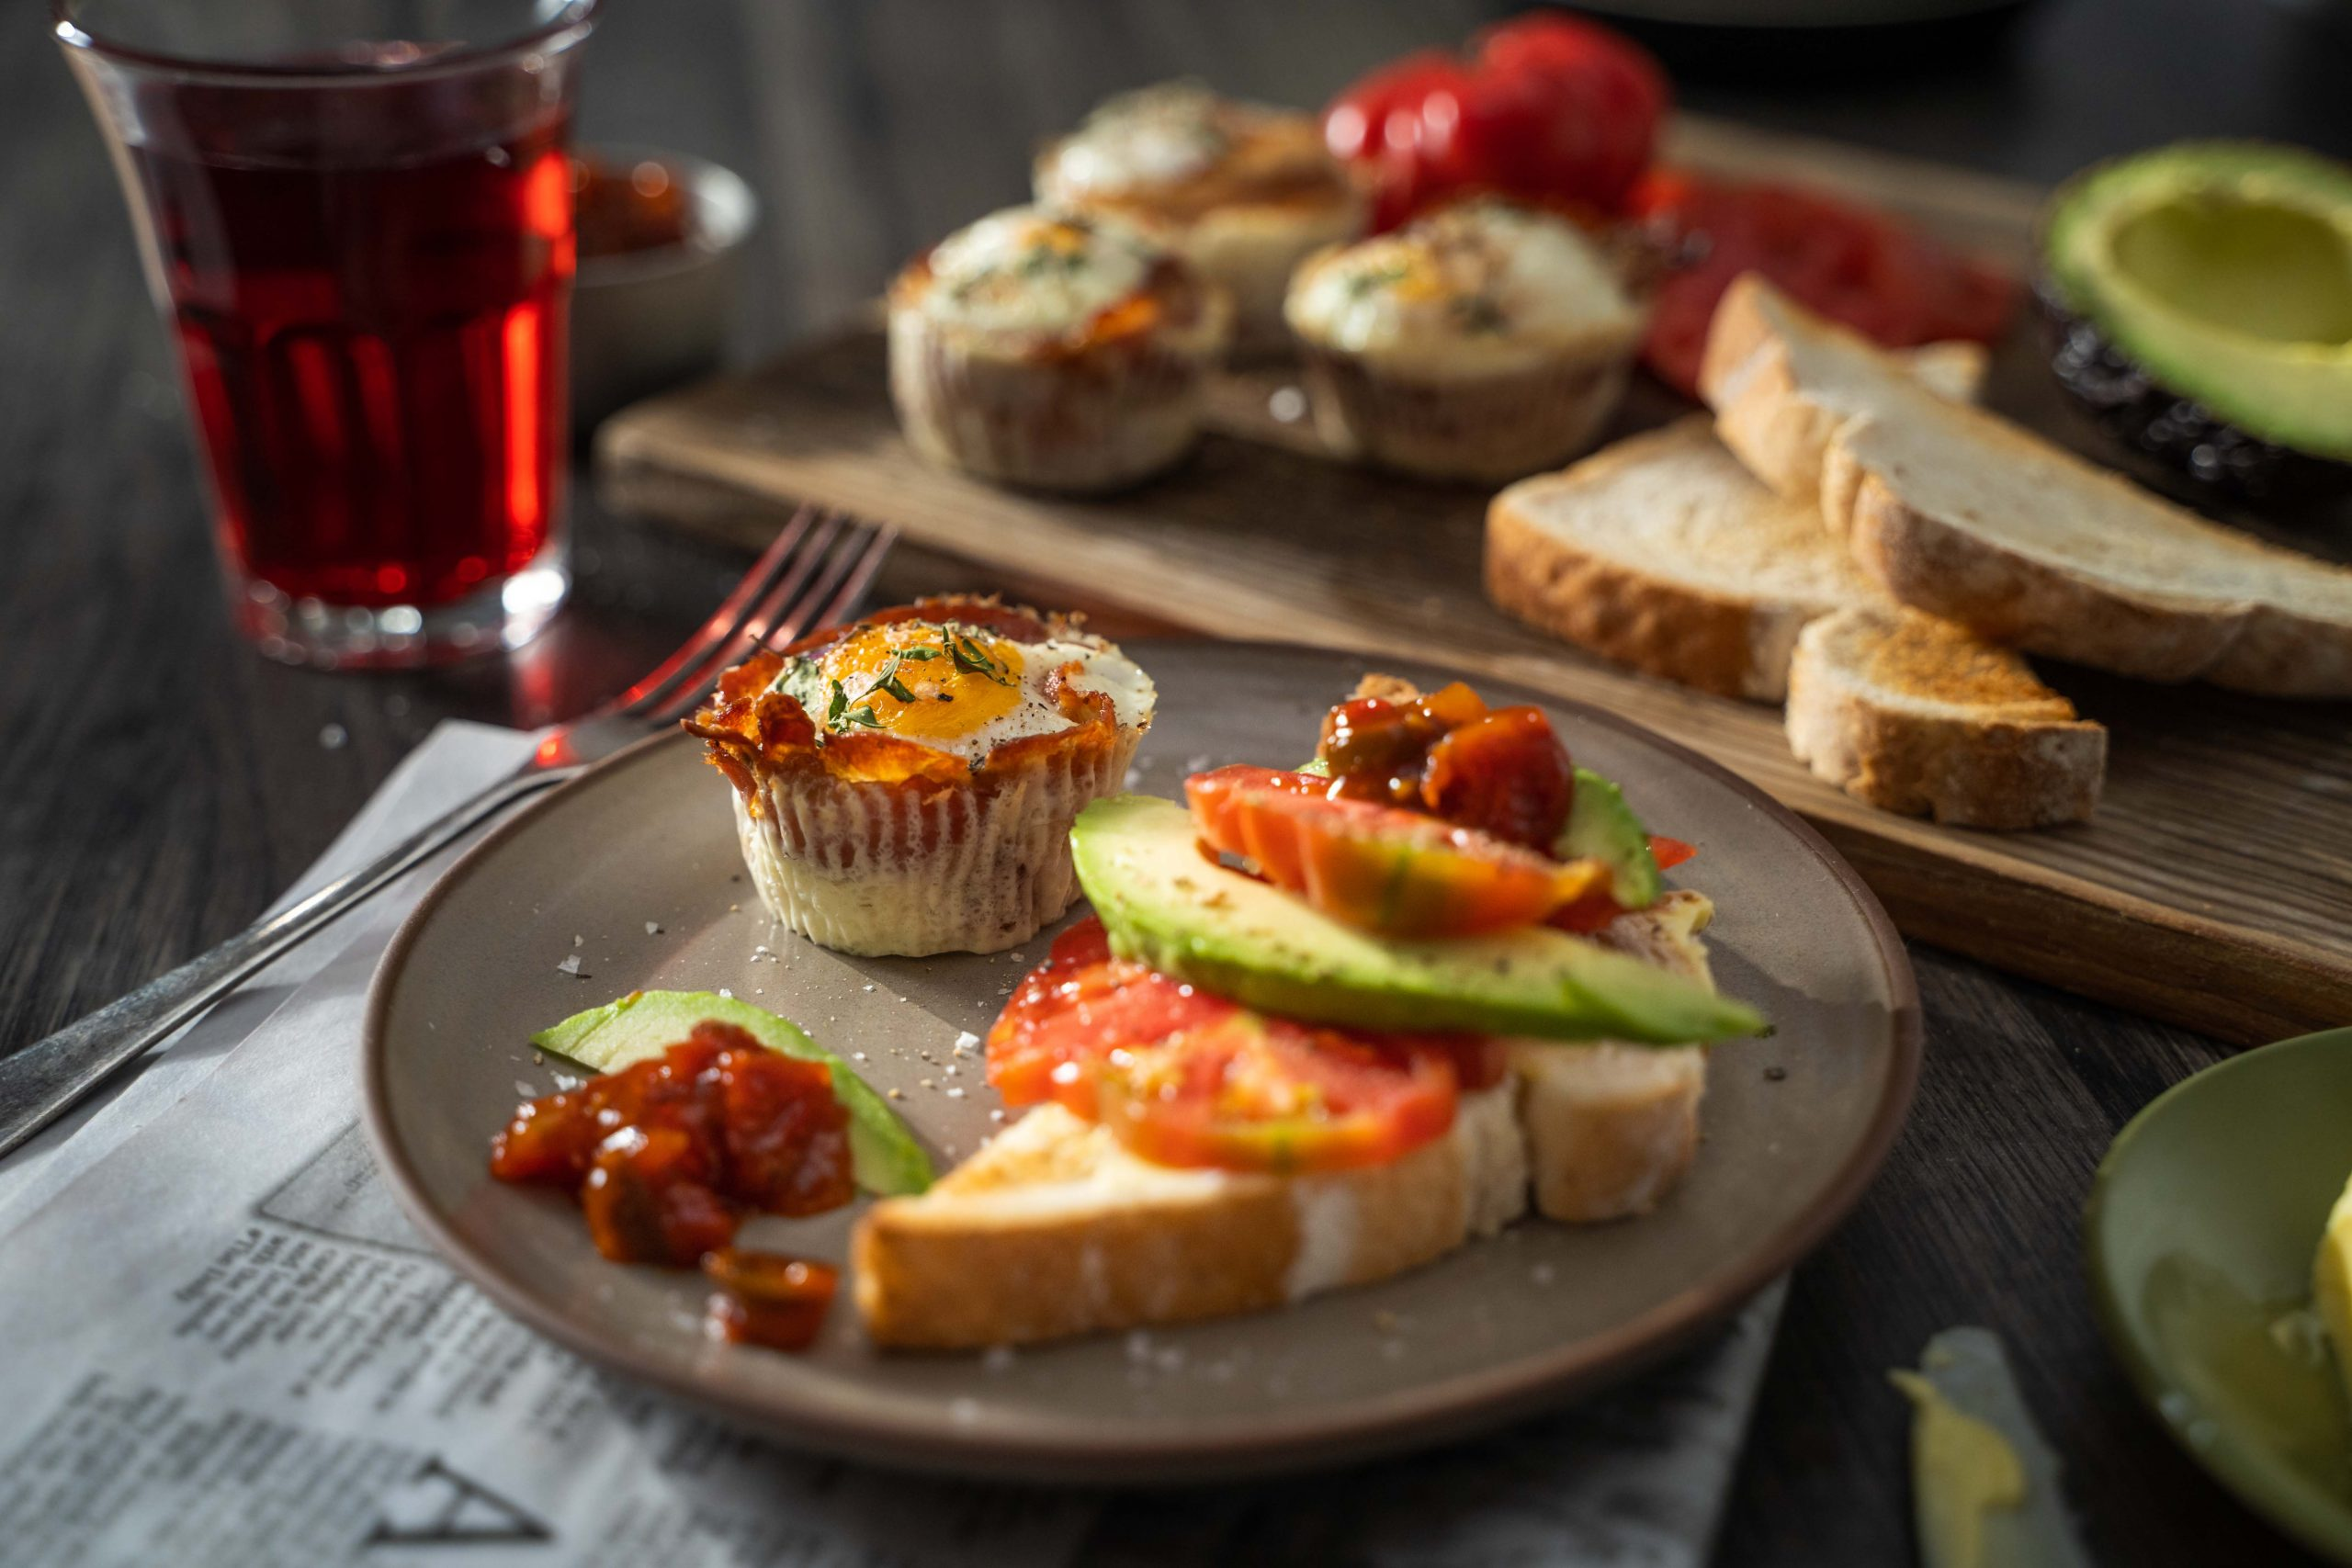 Bacon & egg cups with tomato and avocado toast on a plate with relish and a glass of juice.